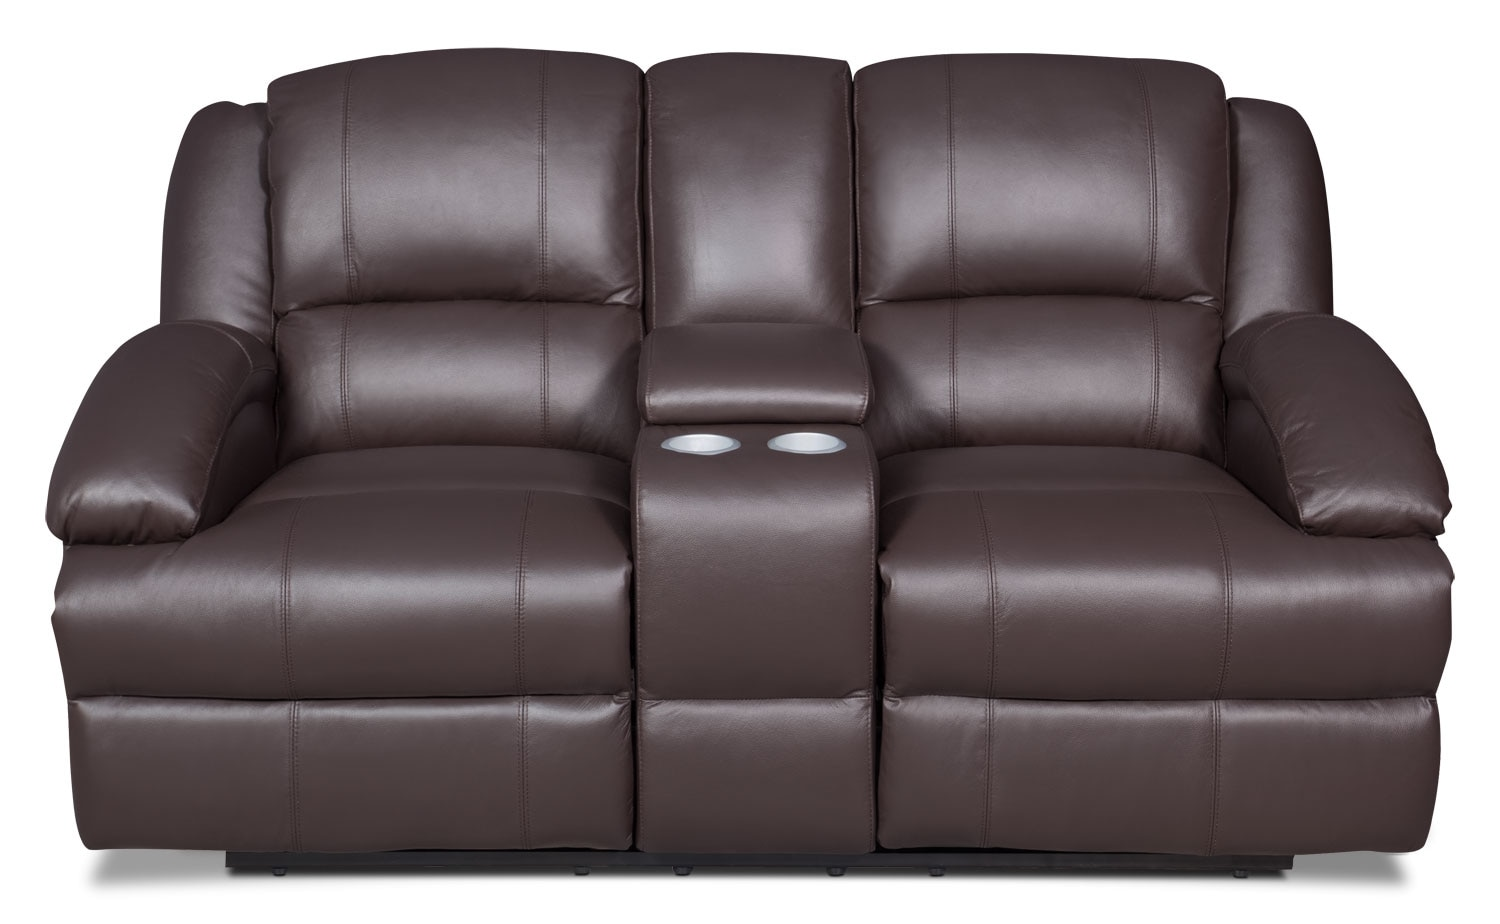 Living Room Furniture - Luka Genuine Leather Power Reclining Loveseat with Console - Brown